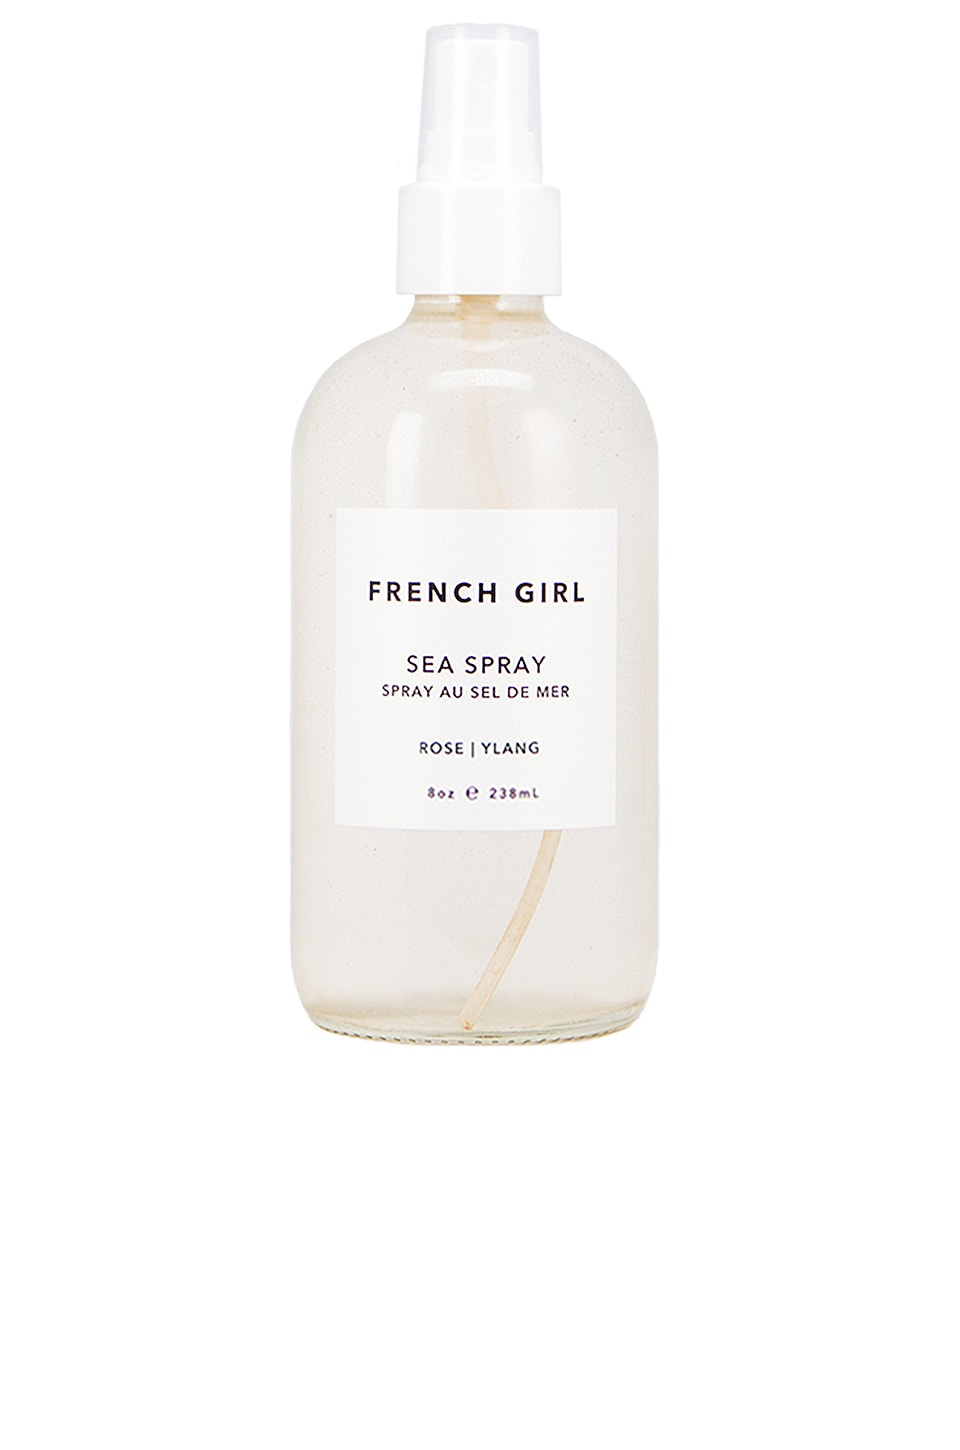 French Girl Sea Spray in Rose & Ylang